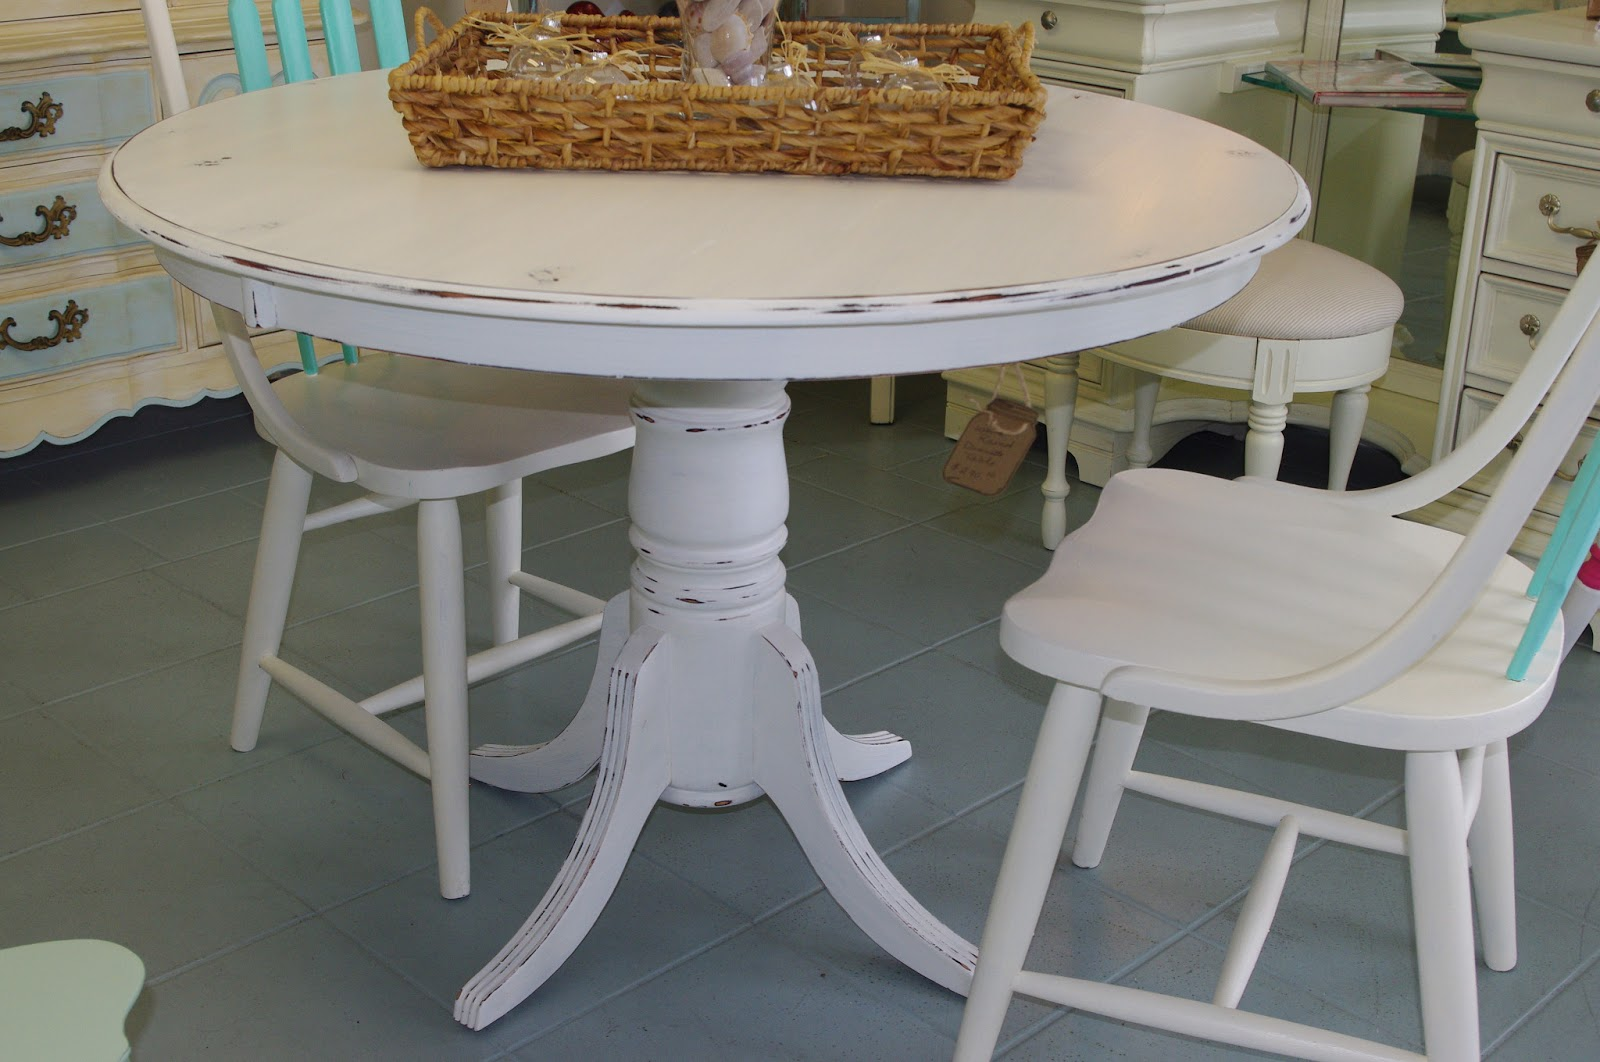 Coastal chic boutique distressed white round dining table for Distressed round dining table